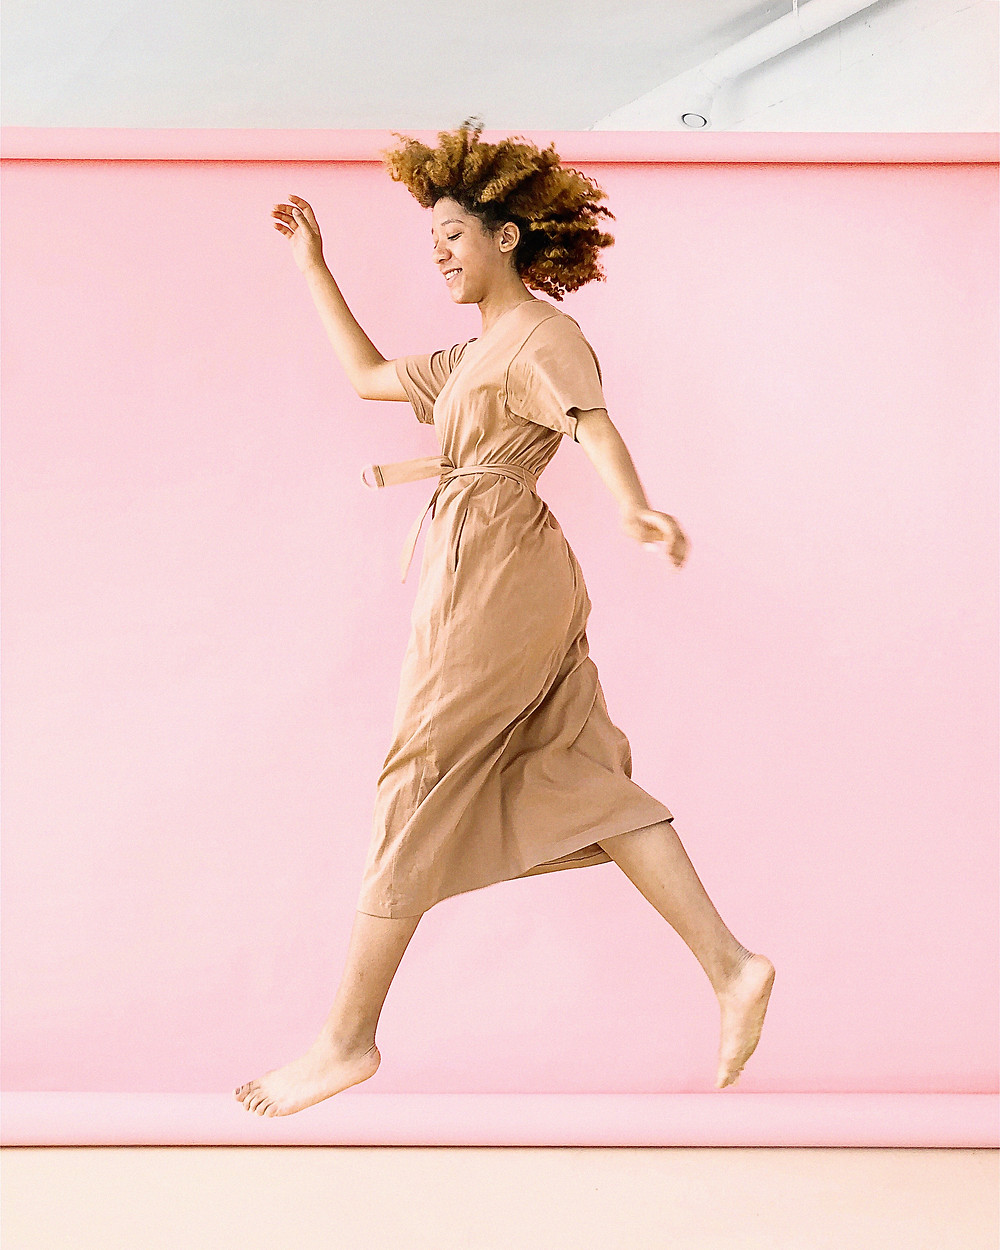 Woman dancing with confidence